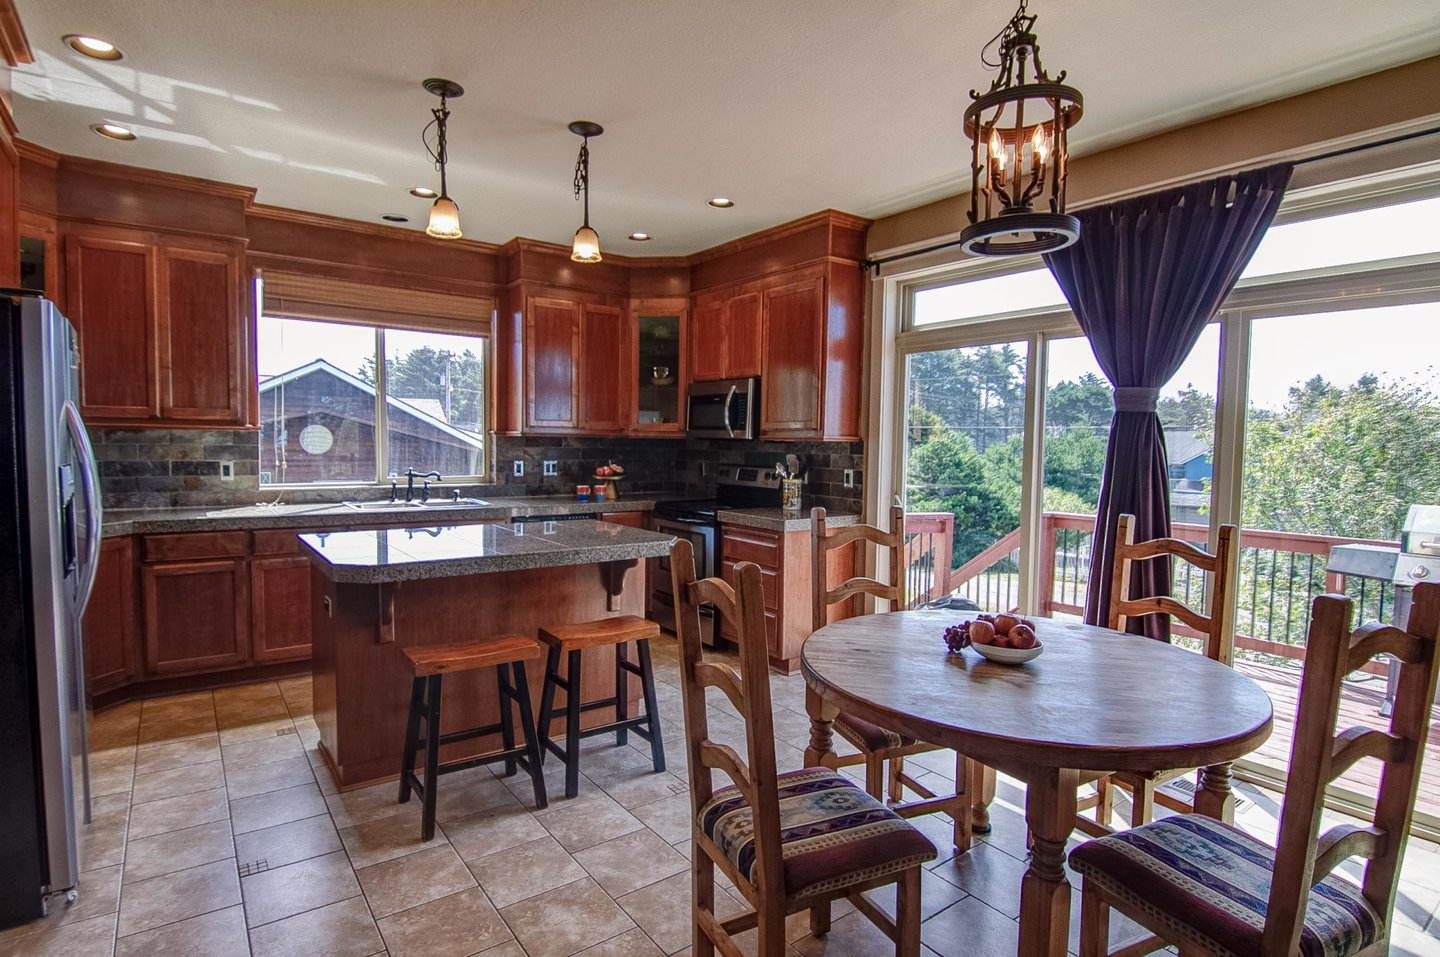 There is plenty of room for the whole family to cook and dine together.